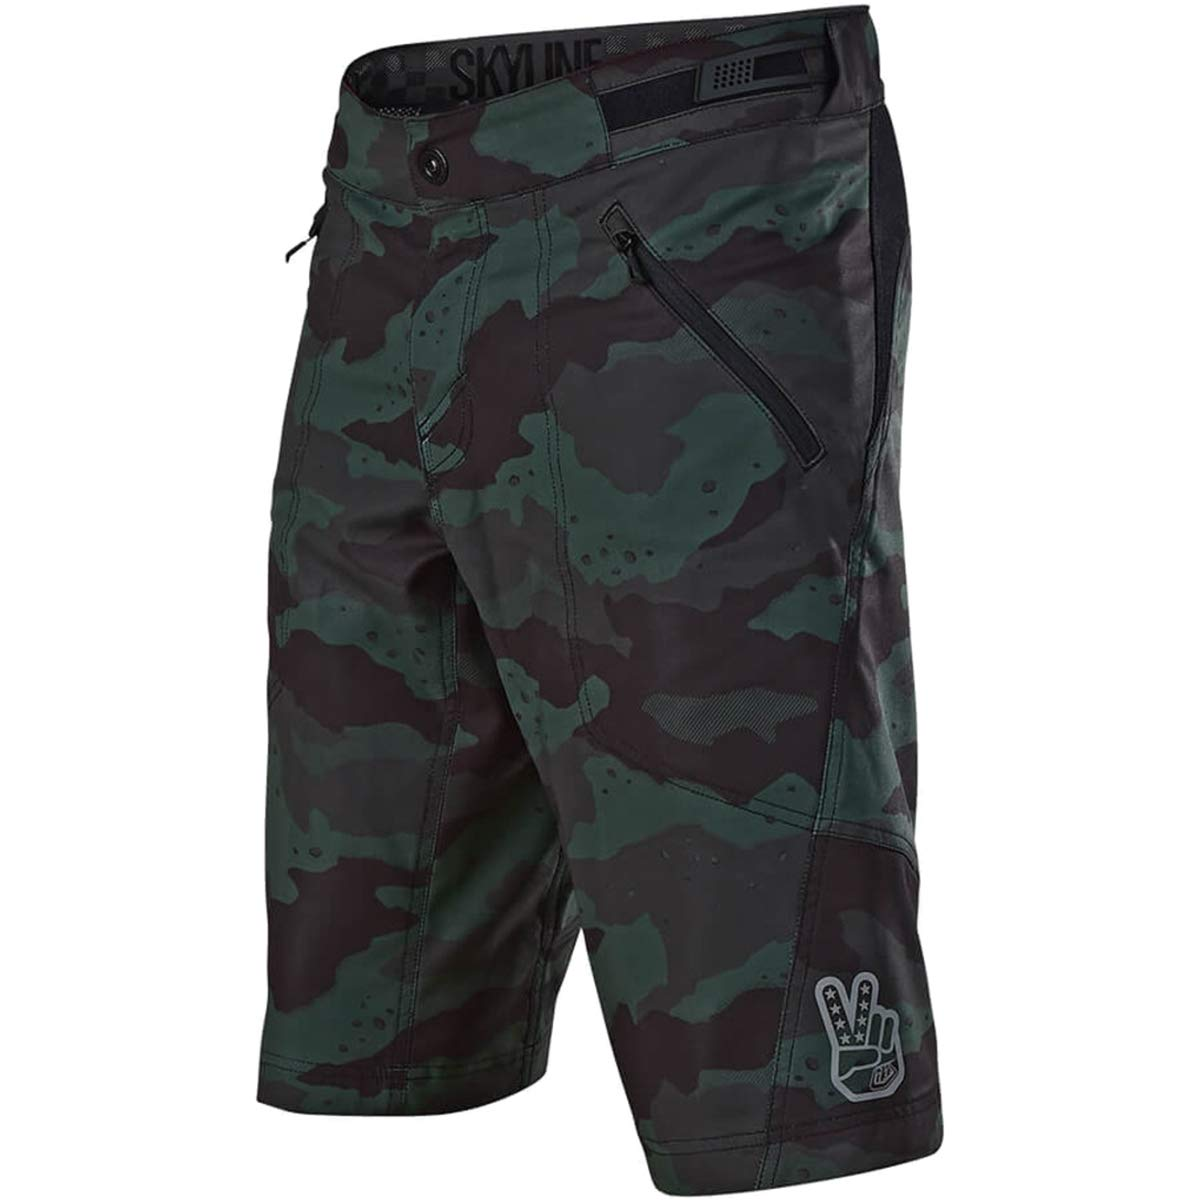 Troy Lee Designs Skyline Short Shell - Men's Camo Stealth, 32 by Troy Lee Designs